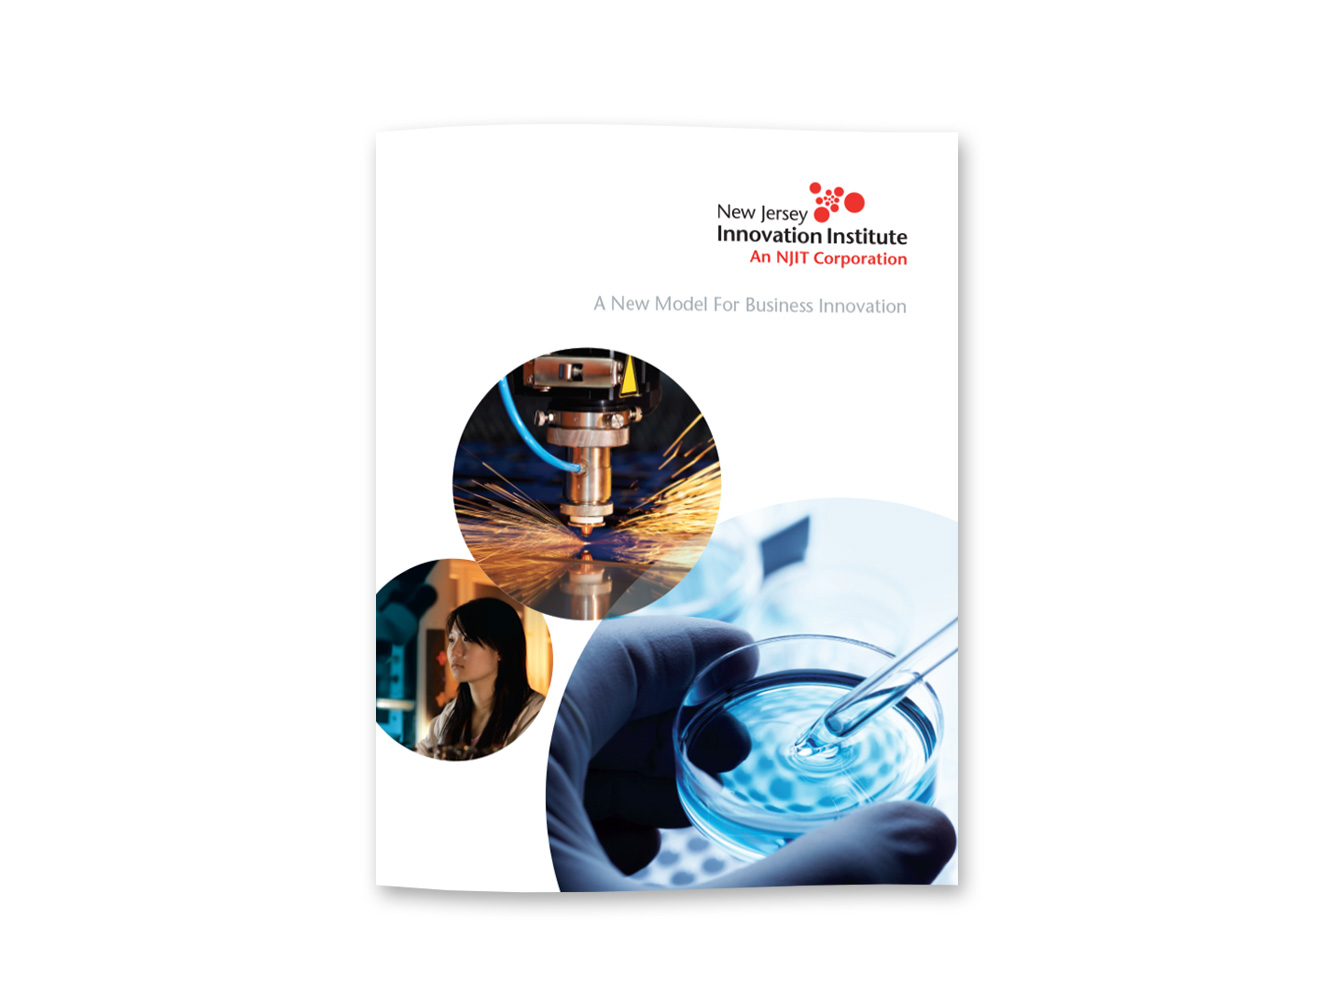 NJII_2015_Brochure_Sample